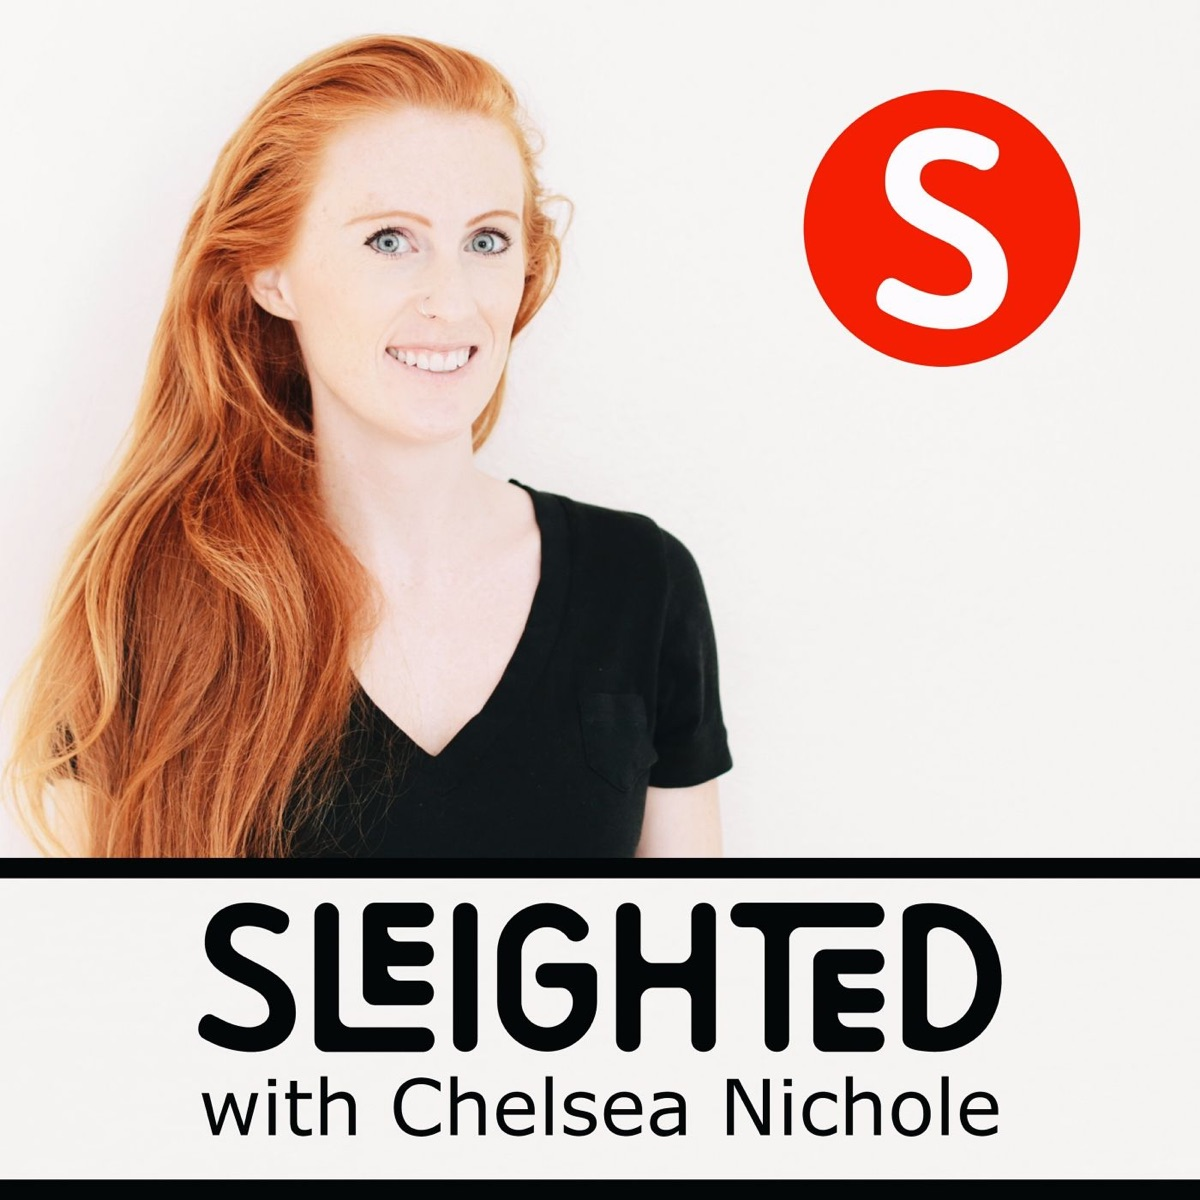 Sleighted with Chelsea Nichole